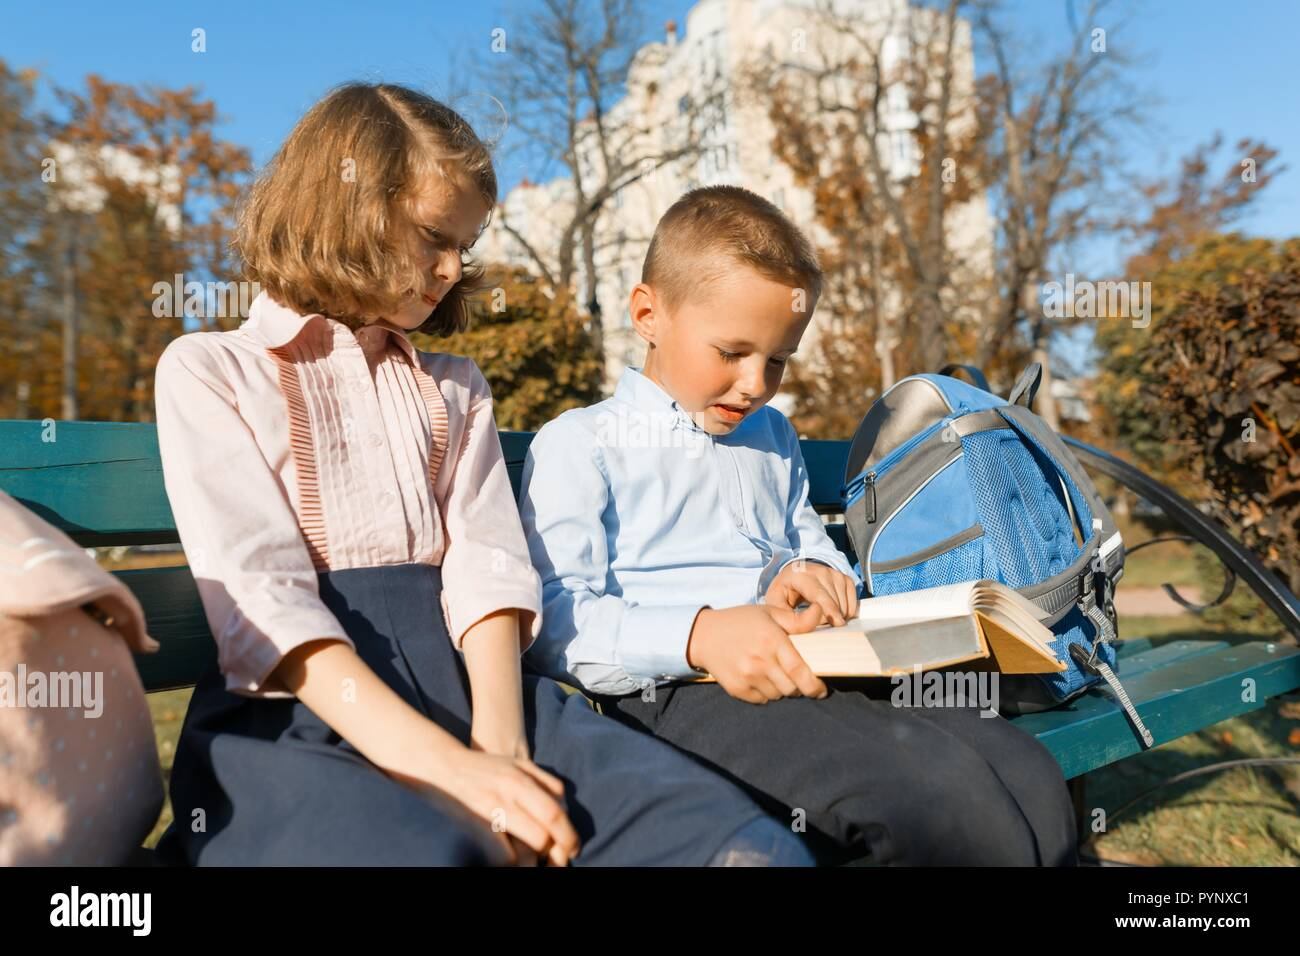 Little boy and girl schoolchildren read a book, sit on a bench, children with backpacks, bright sunny autumn day. Stock Photo